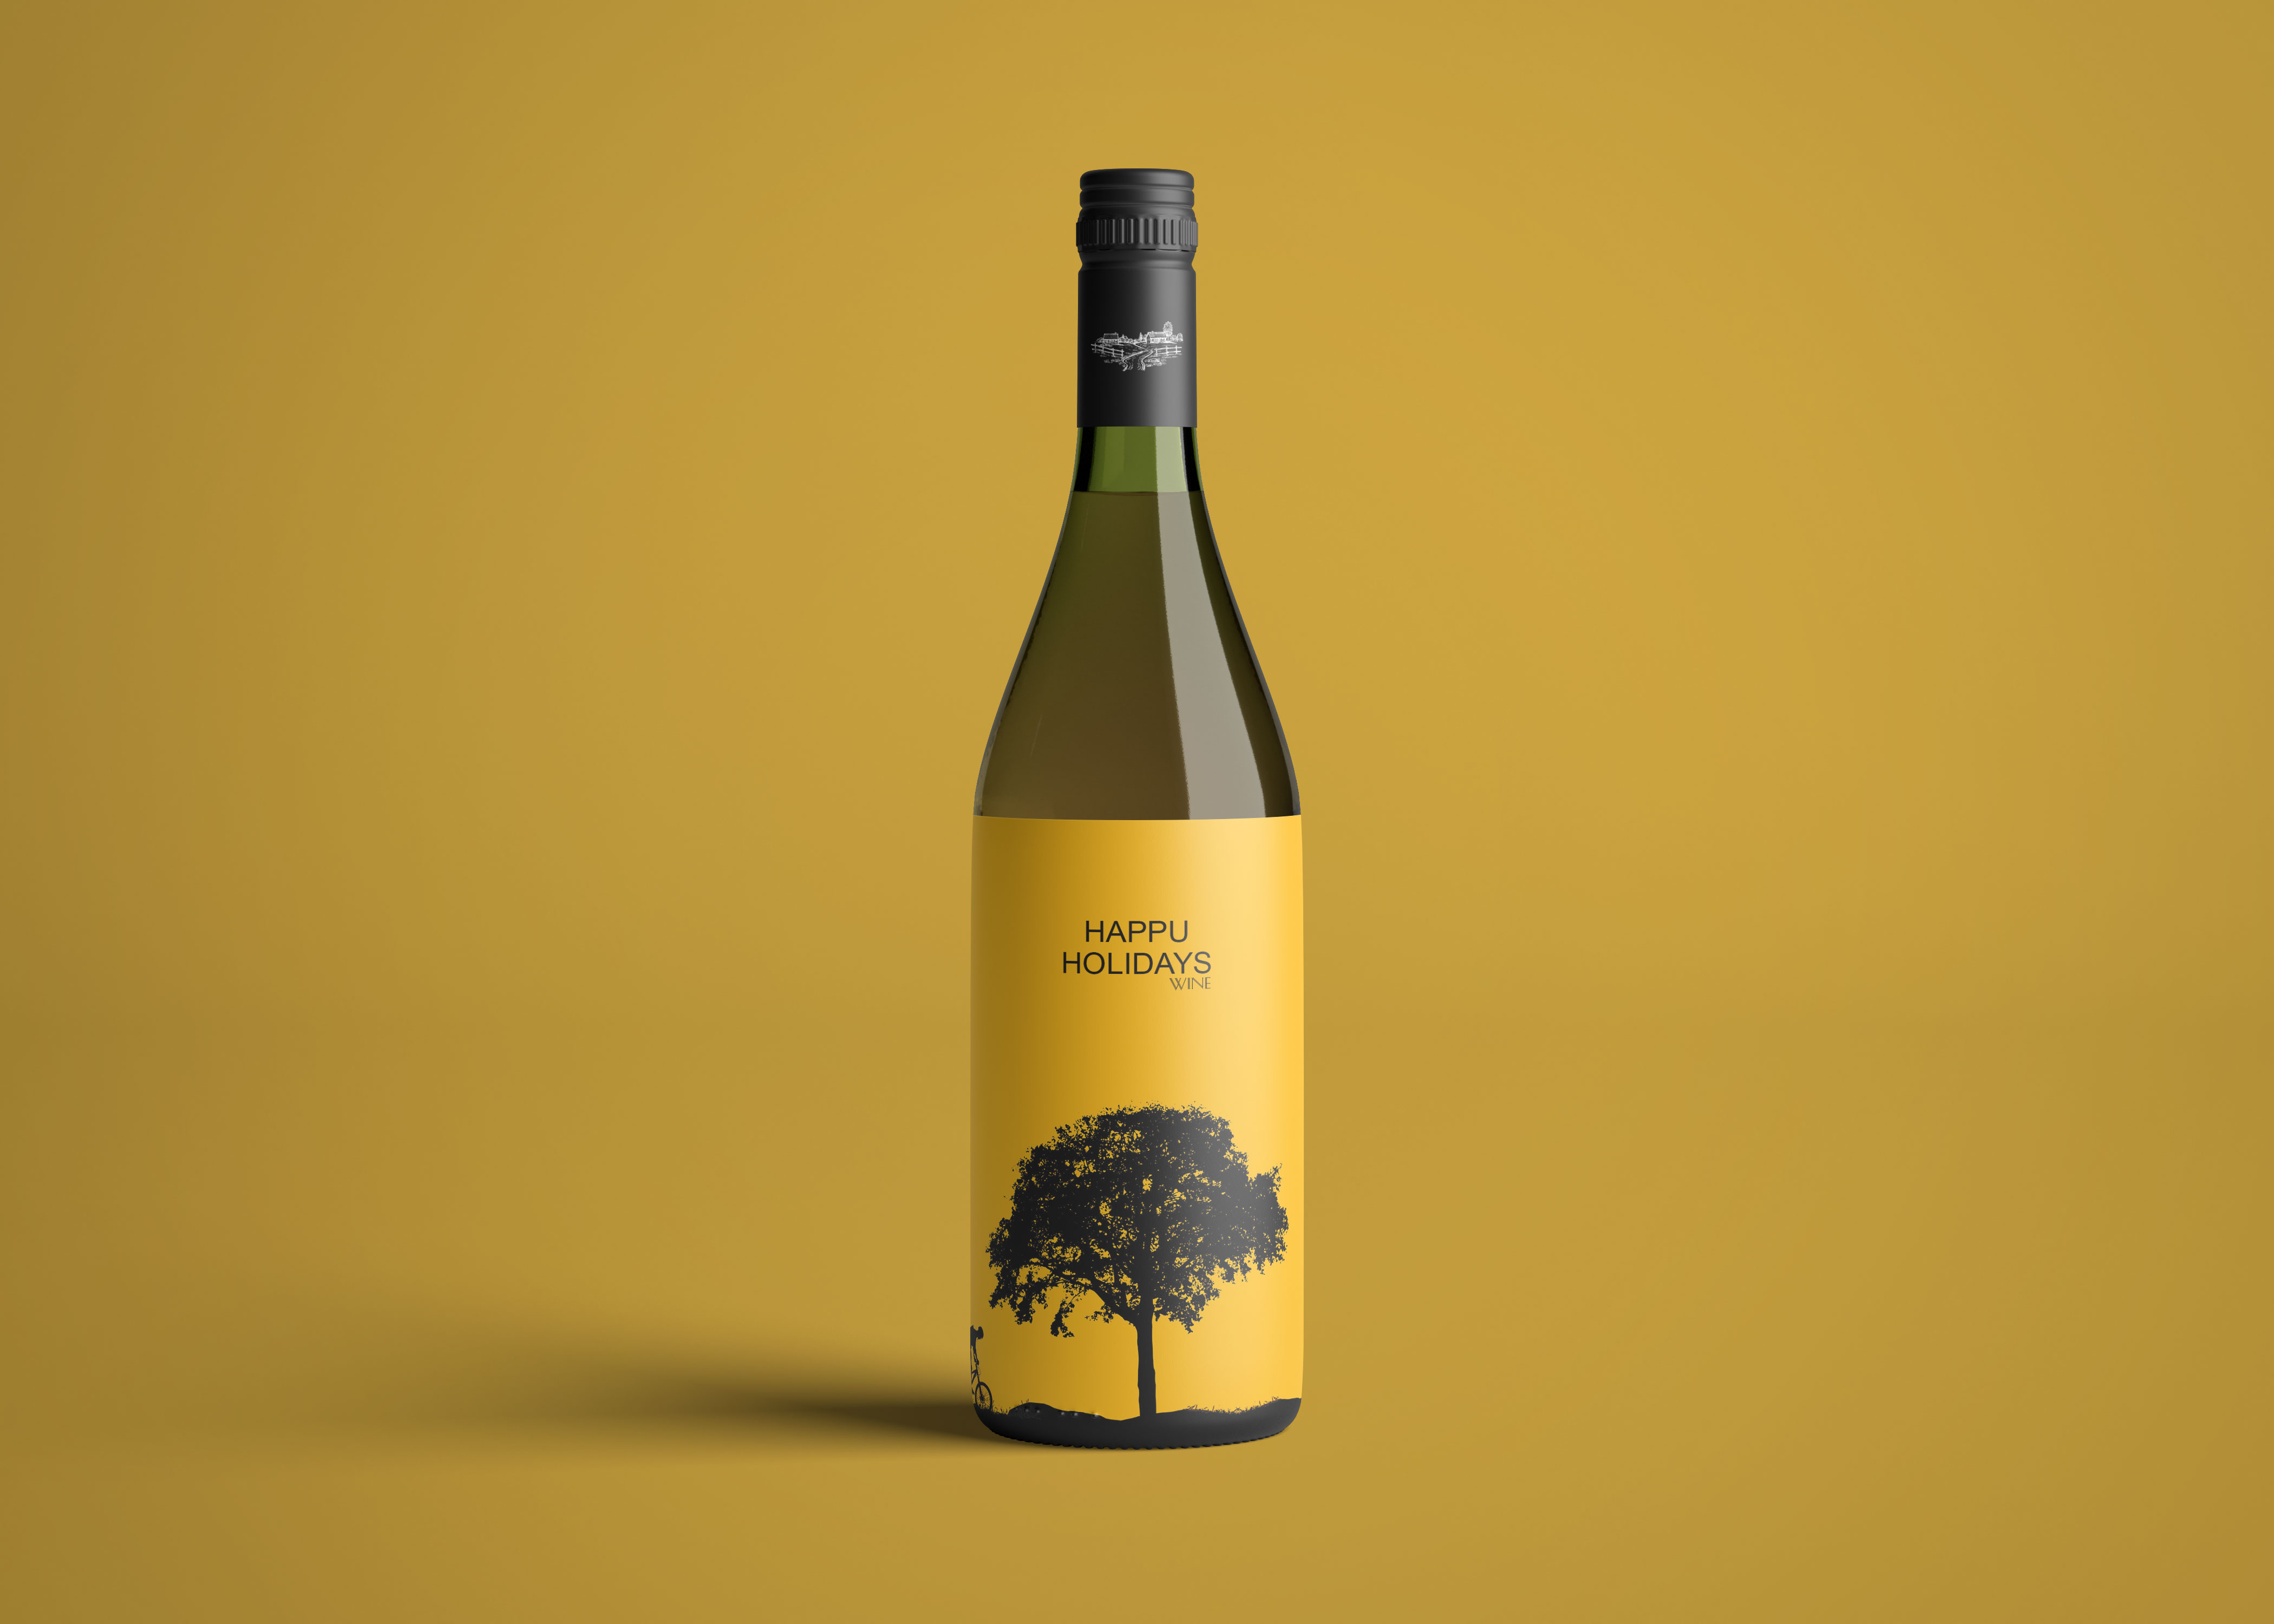 Bottle Label Mockup 2019